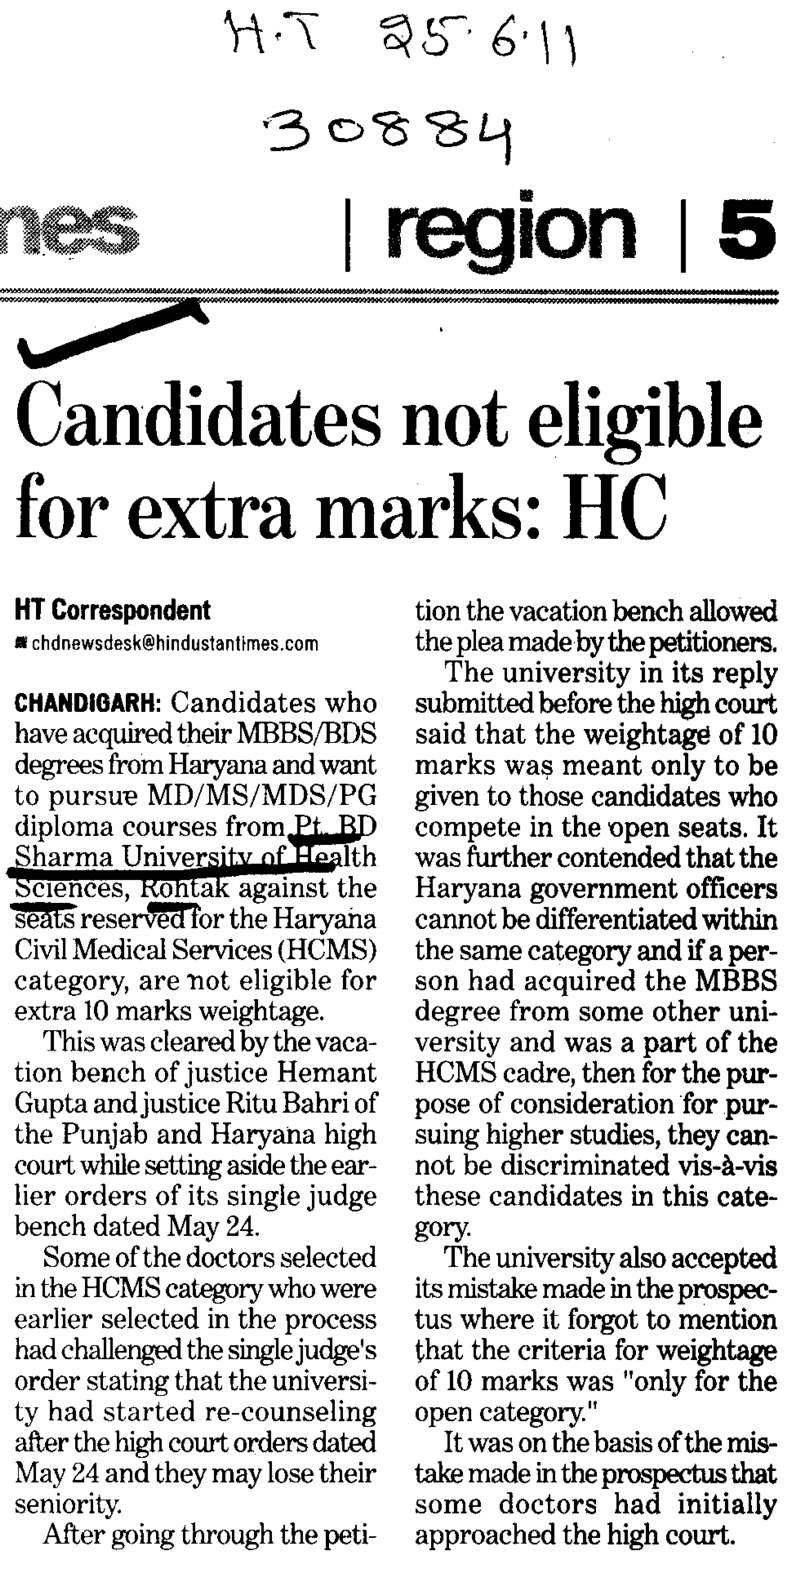 Candidates not eligible for extra marks (Pt BD Sharma University of Health Sciences (BDSUHS))